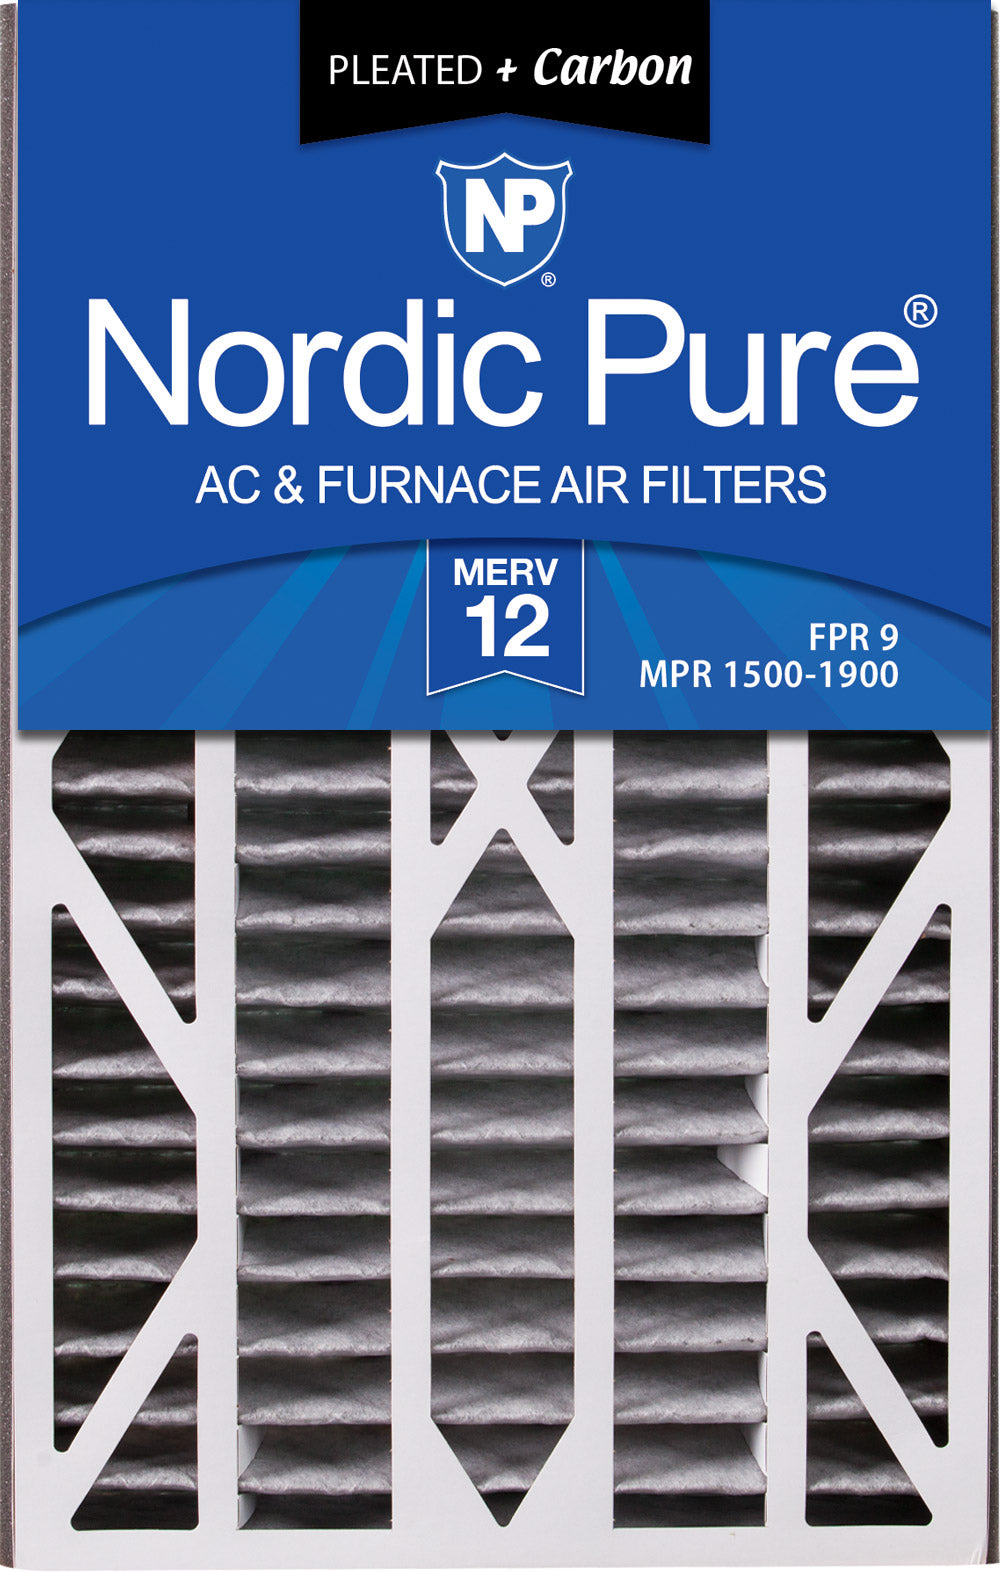 Air Bear Cub 16x25x3 Air Filter Replacement MERV 12 Pleated Plus Carbon 3 Pack